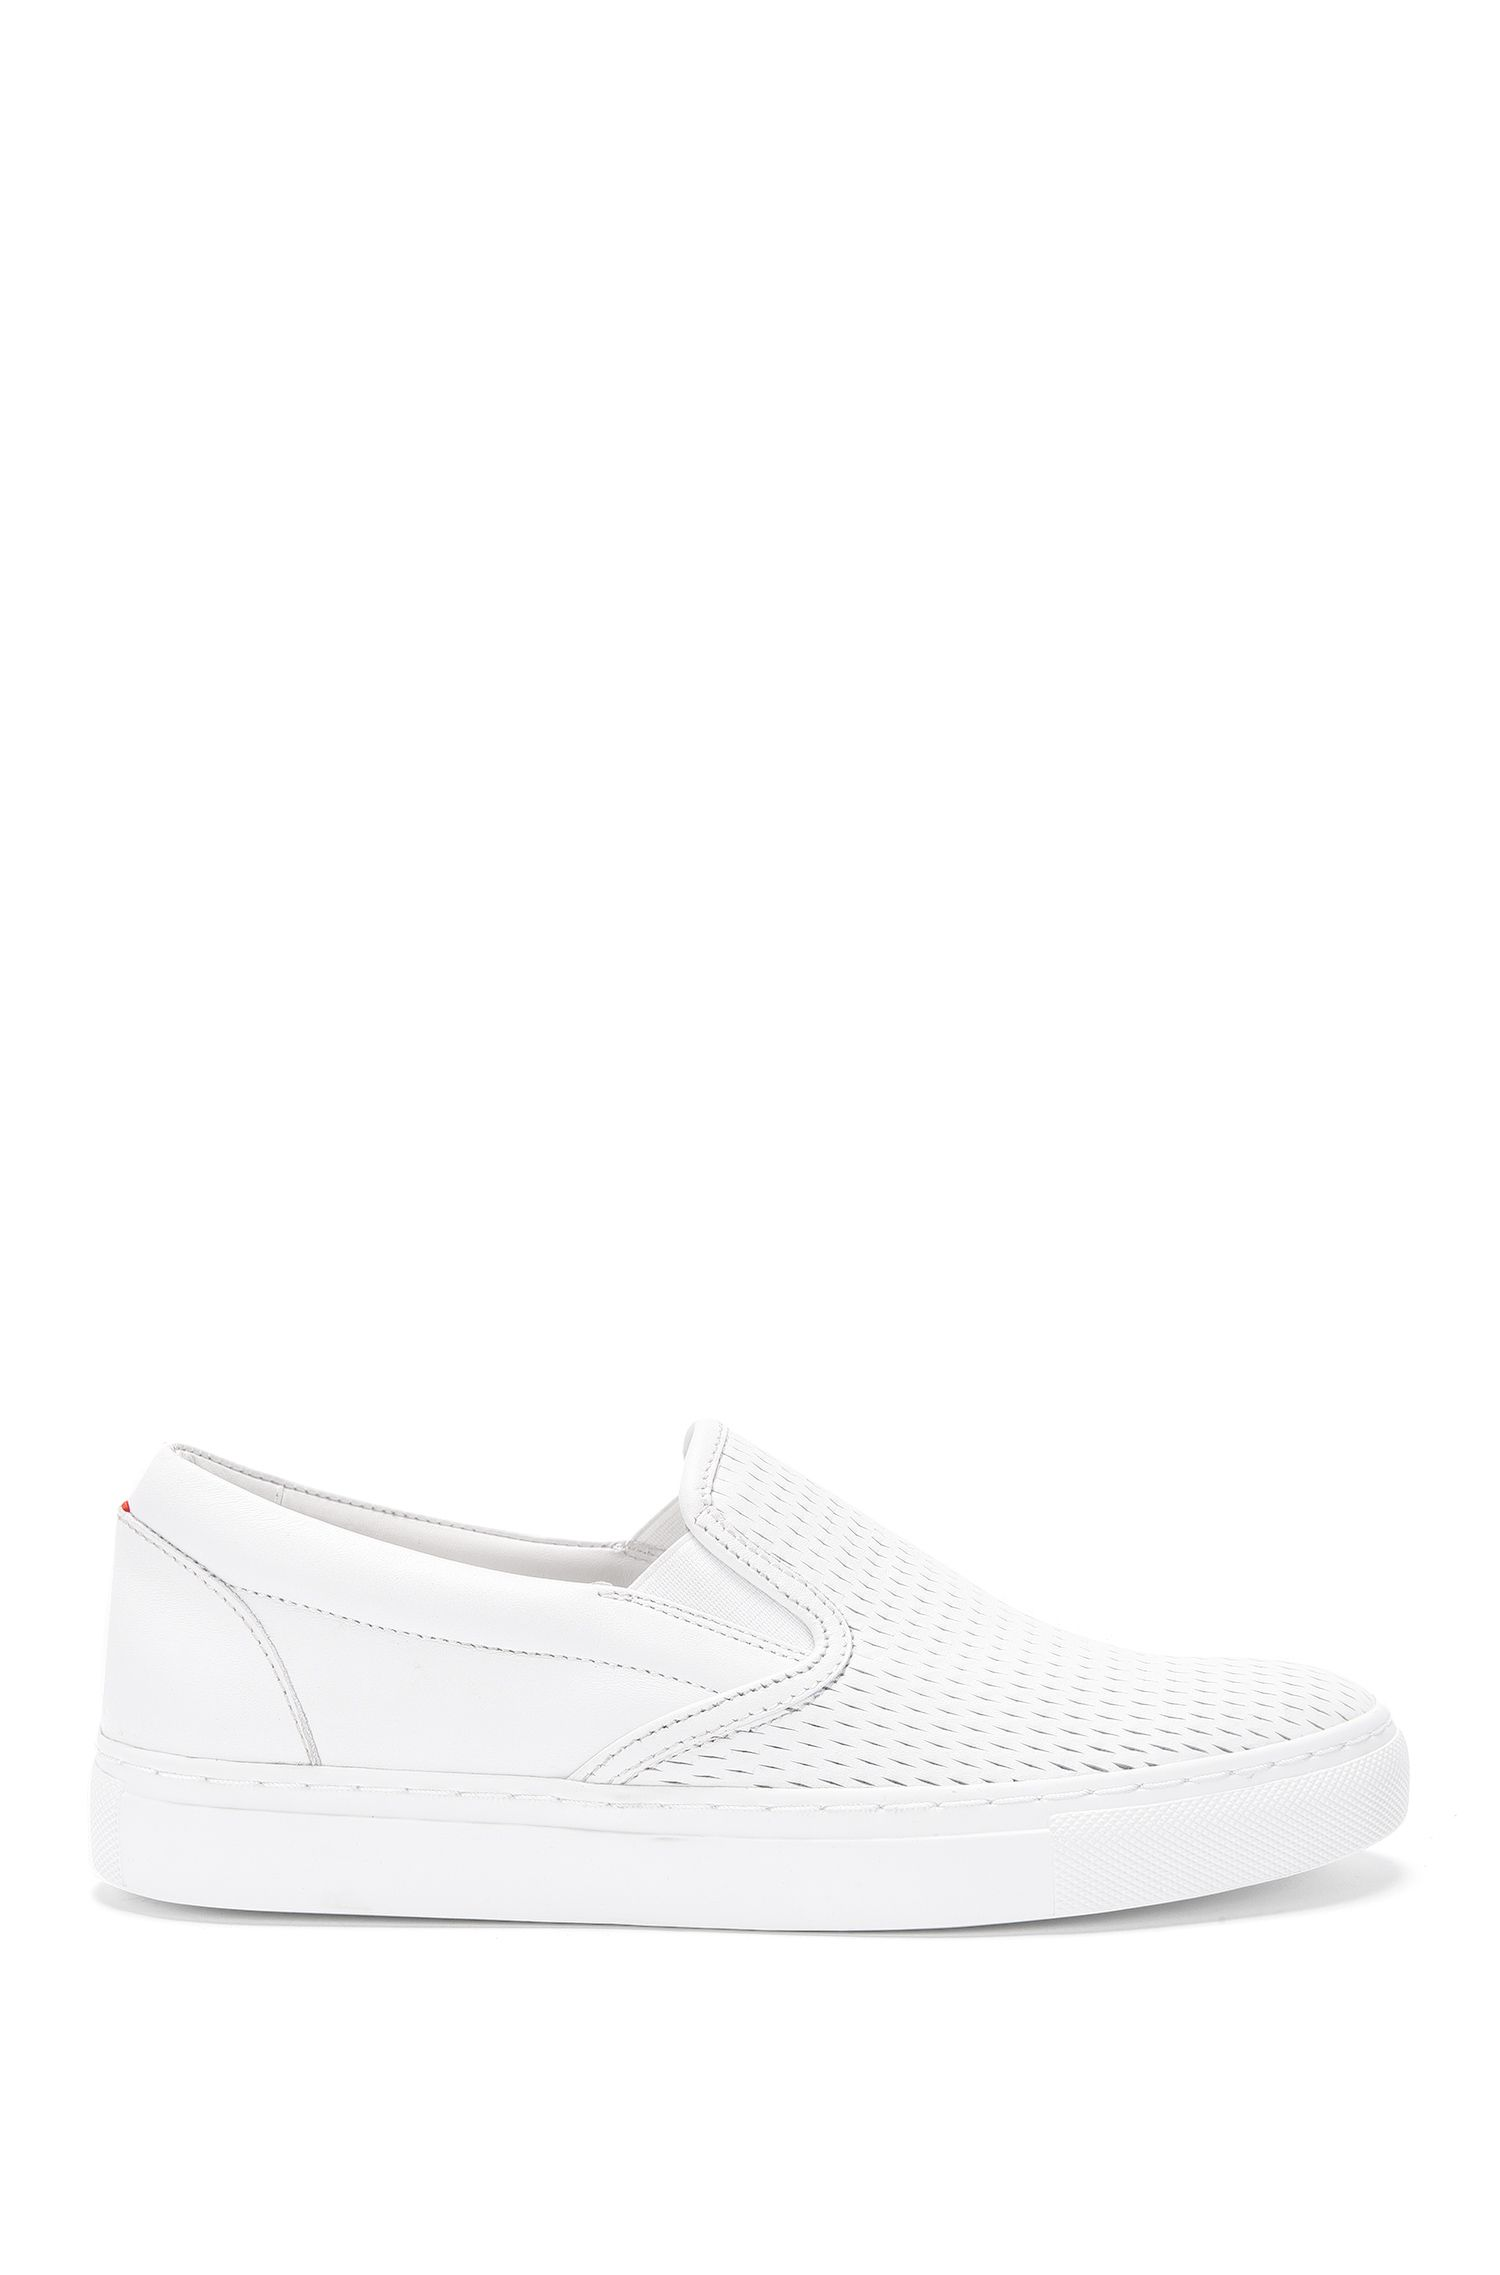 Veterloze sneakers van geperforeerd leer: 'Chloe-P'